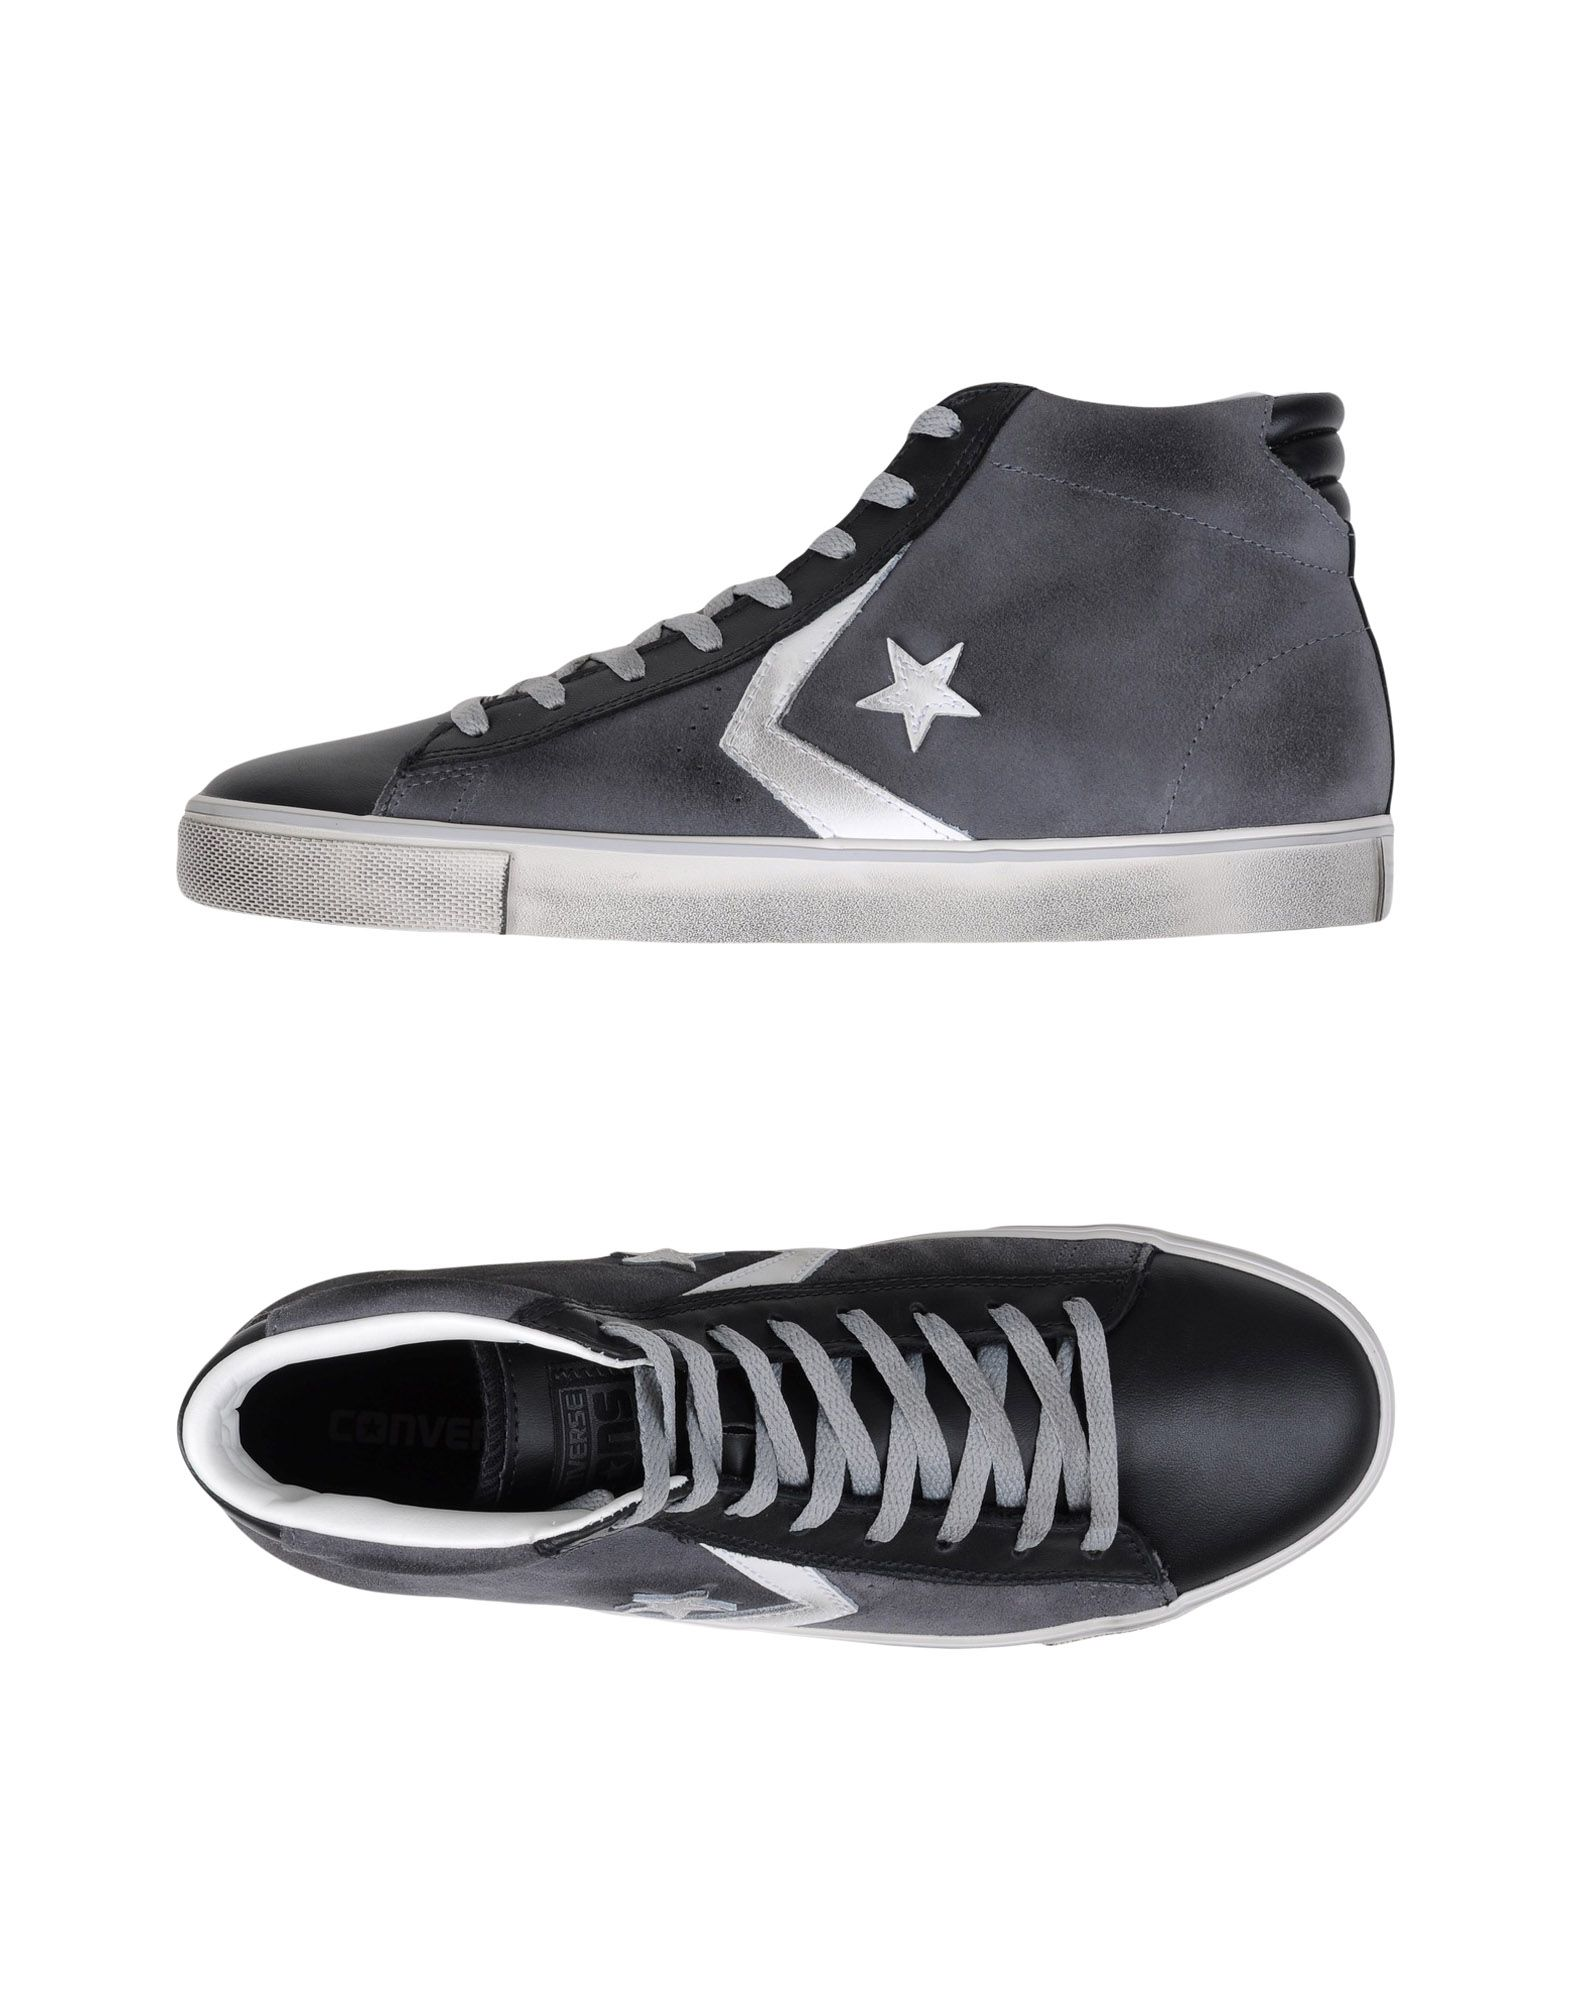 Sneakers Converse Cons Pro Leather Vulc Mid Suede/Lea - Uomo - 11114020FO